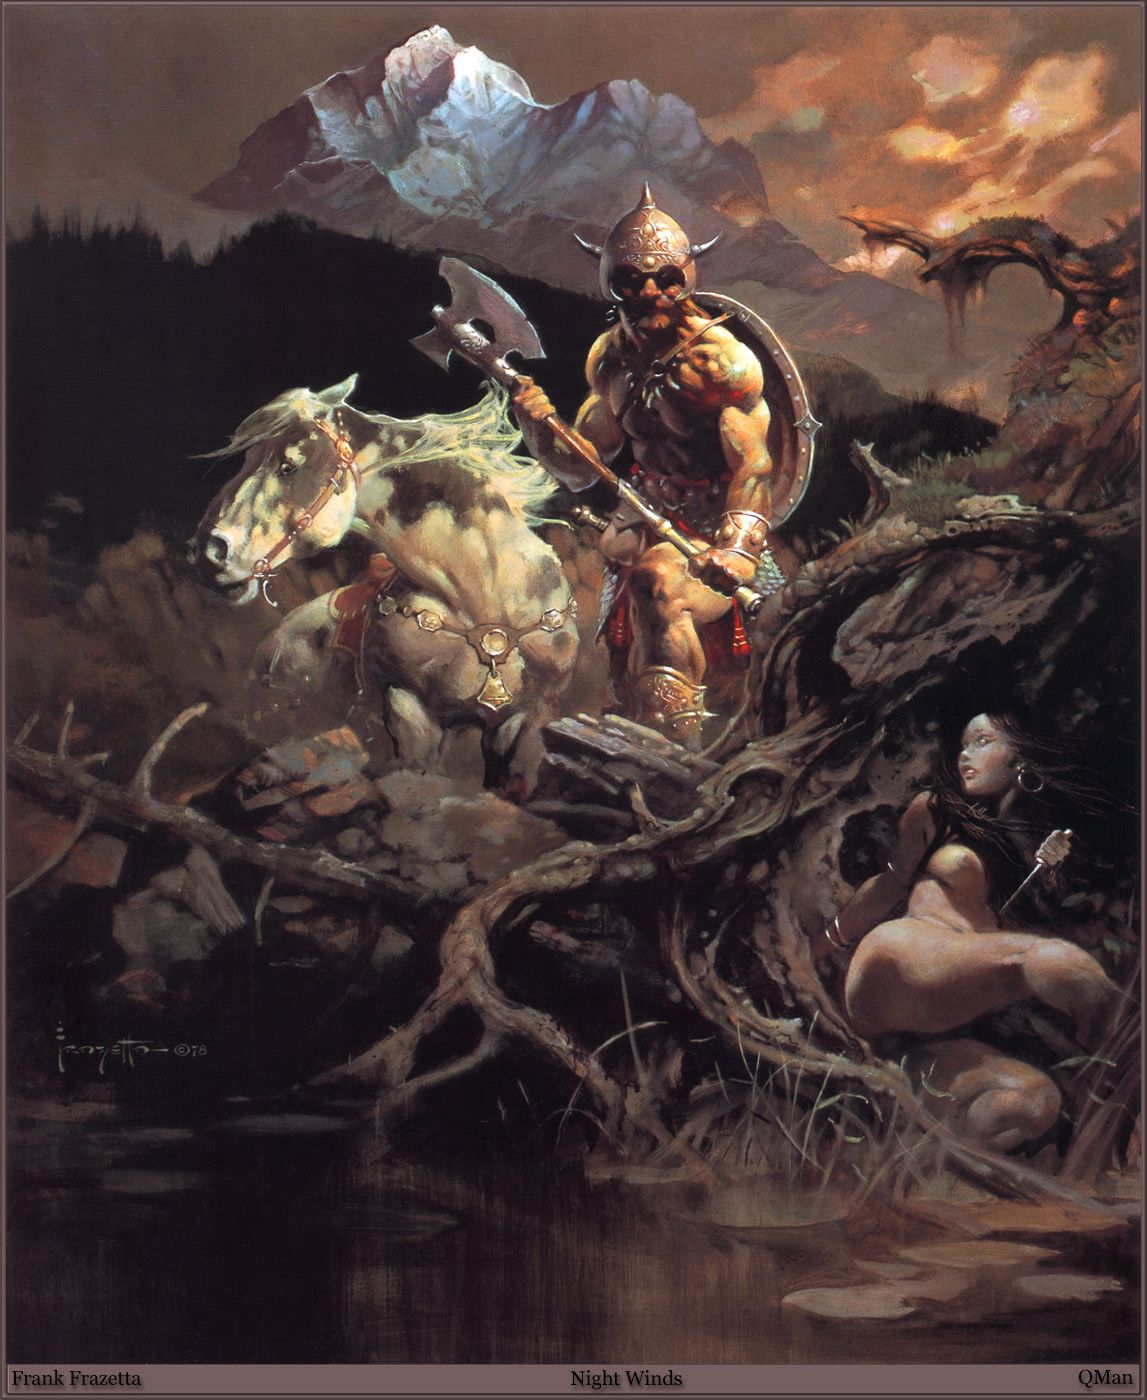 Frank Frazetta Paintings, Art, Pictures, Gallery, QMan_FF_Legacy_552_Night_Winds